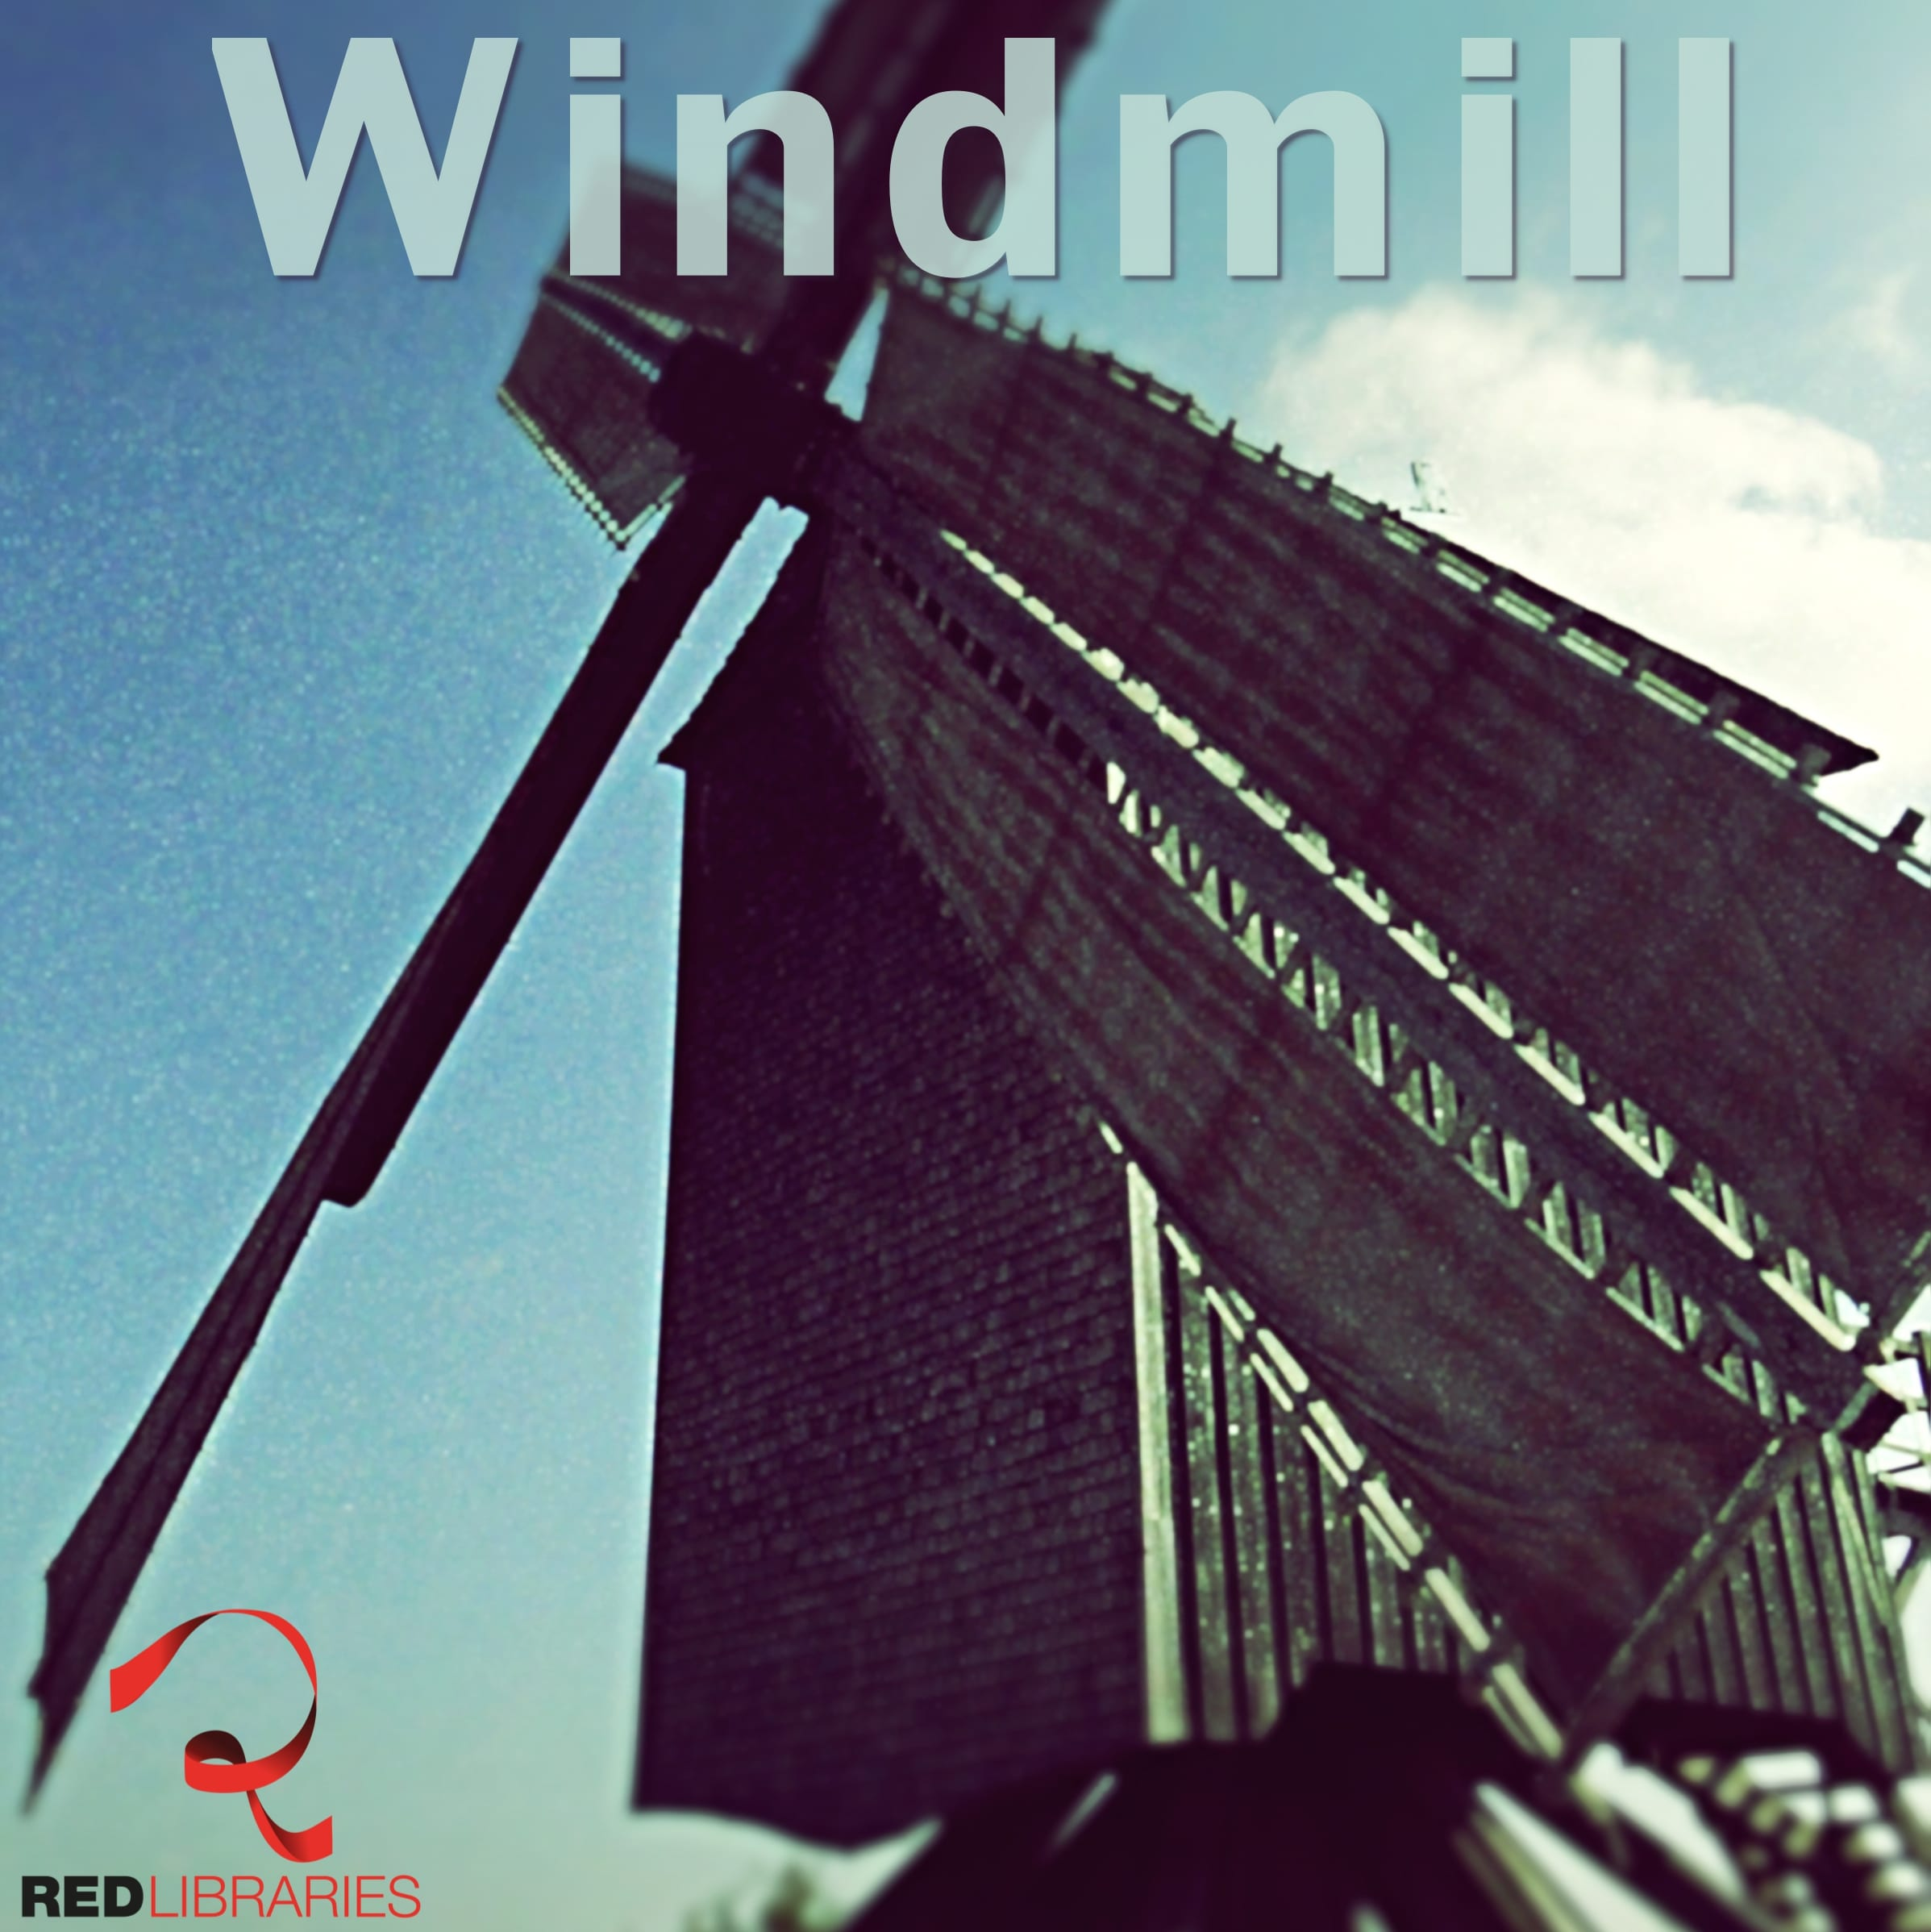 WMill-02-Small-Carre-Txt